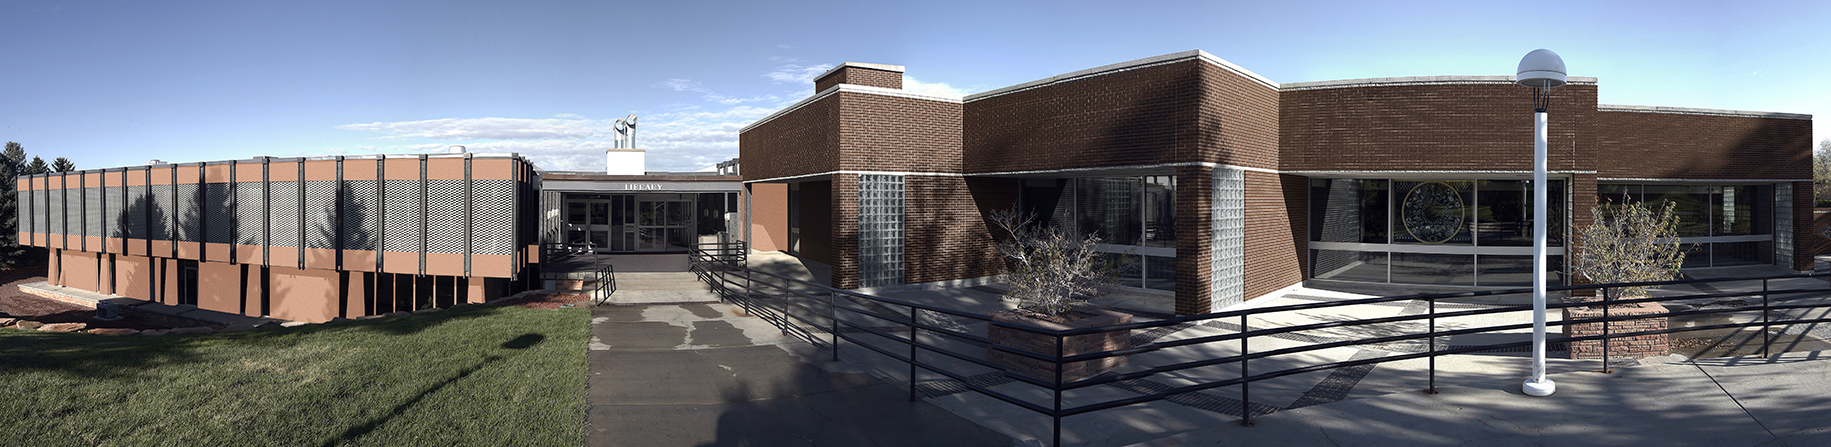 panorama of the library building exterior